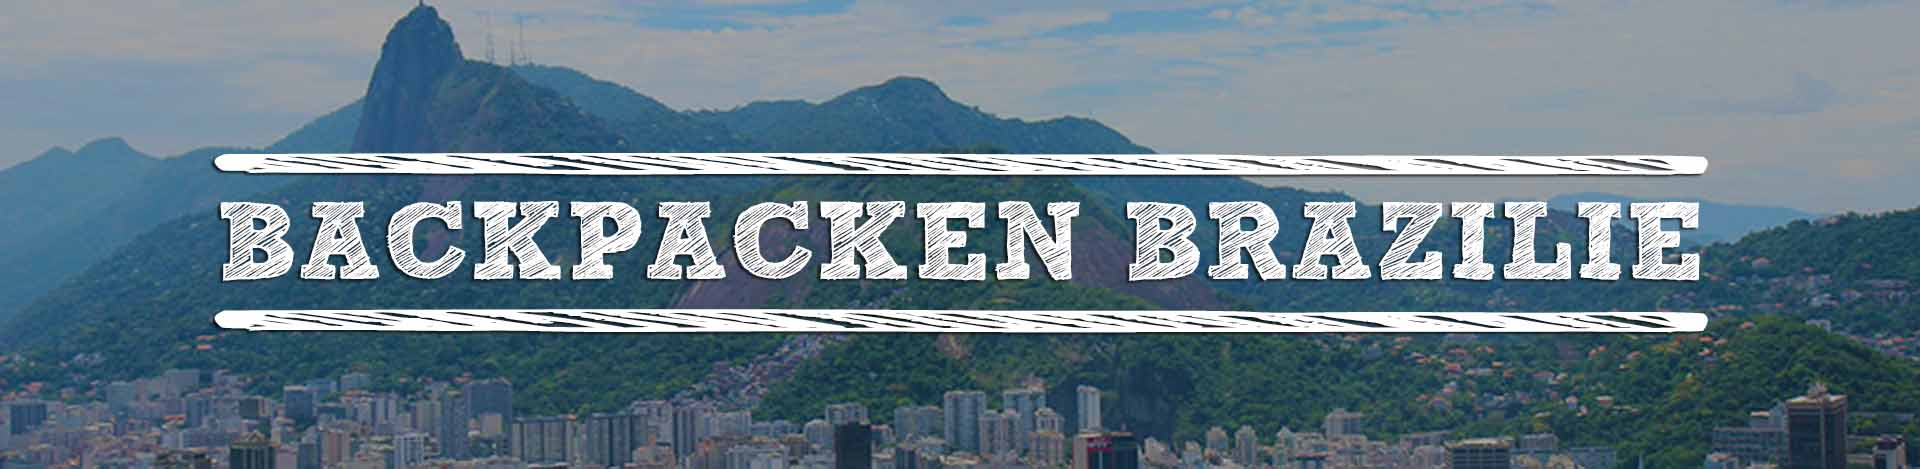 Backpacken Brazilie-header